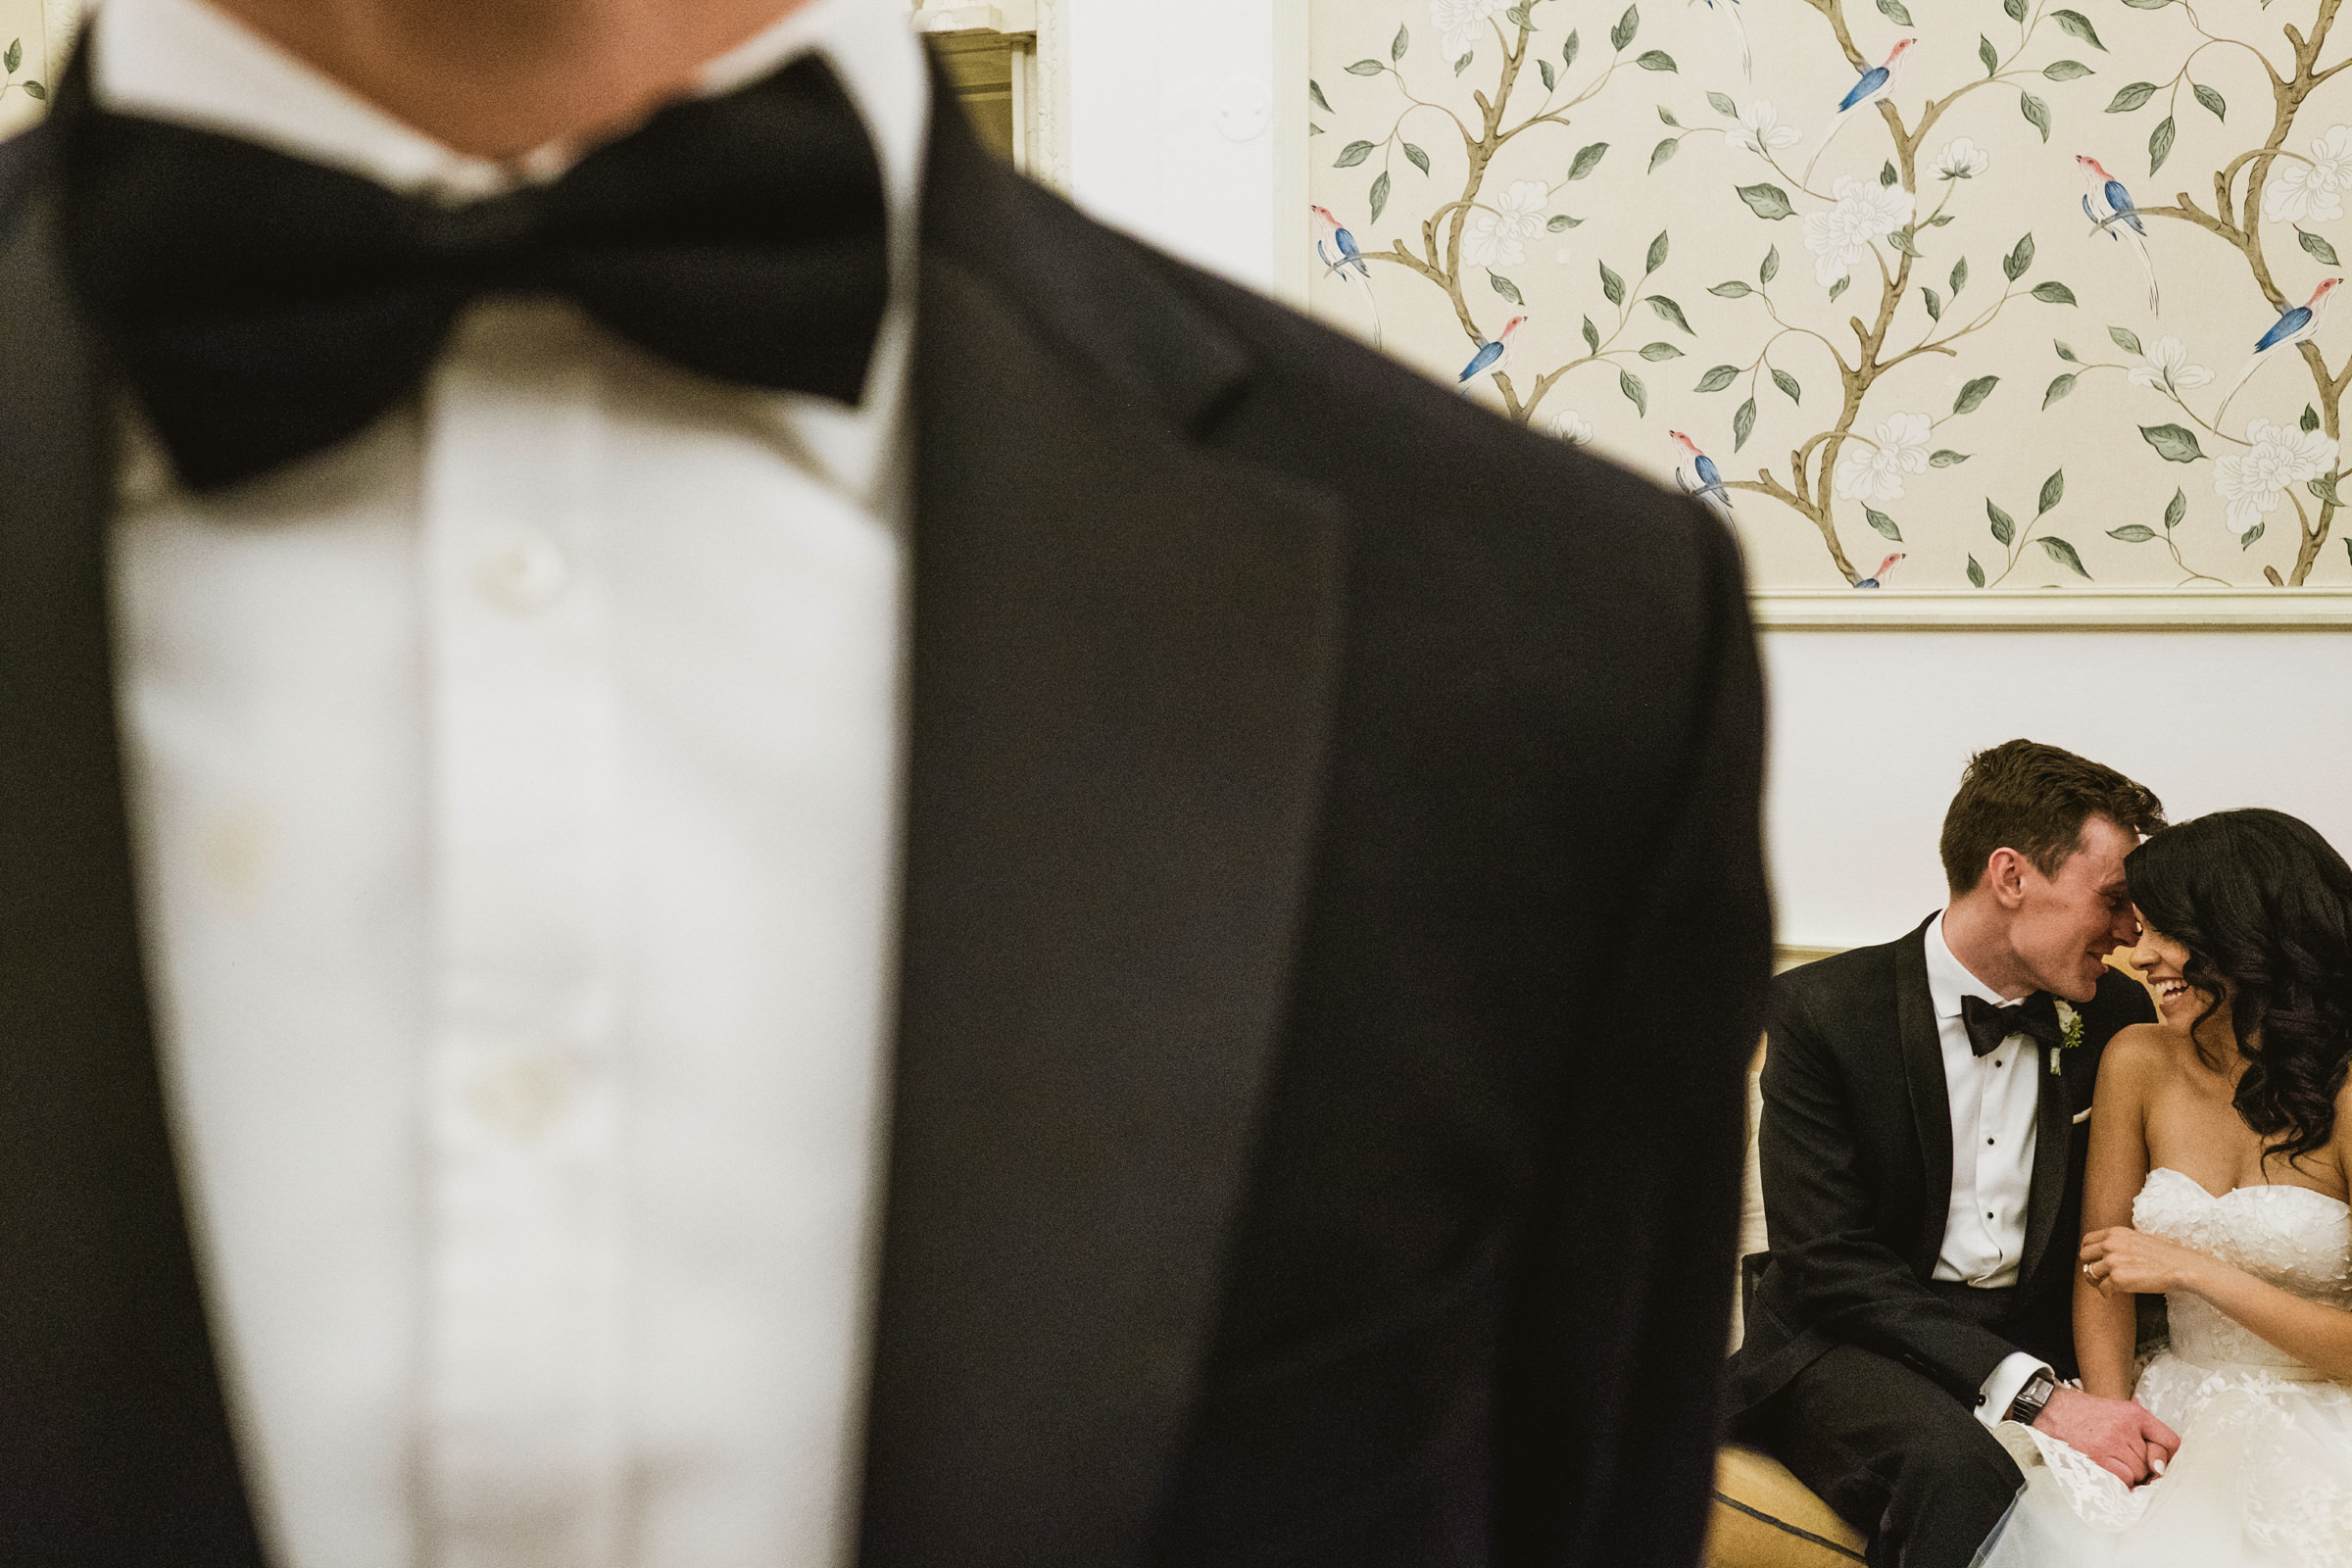 Bride and groom whisper in the background - photo by York Place Studios